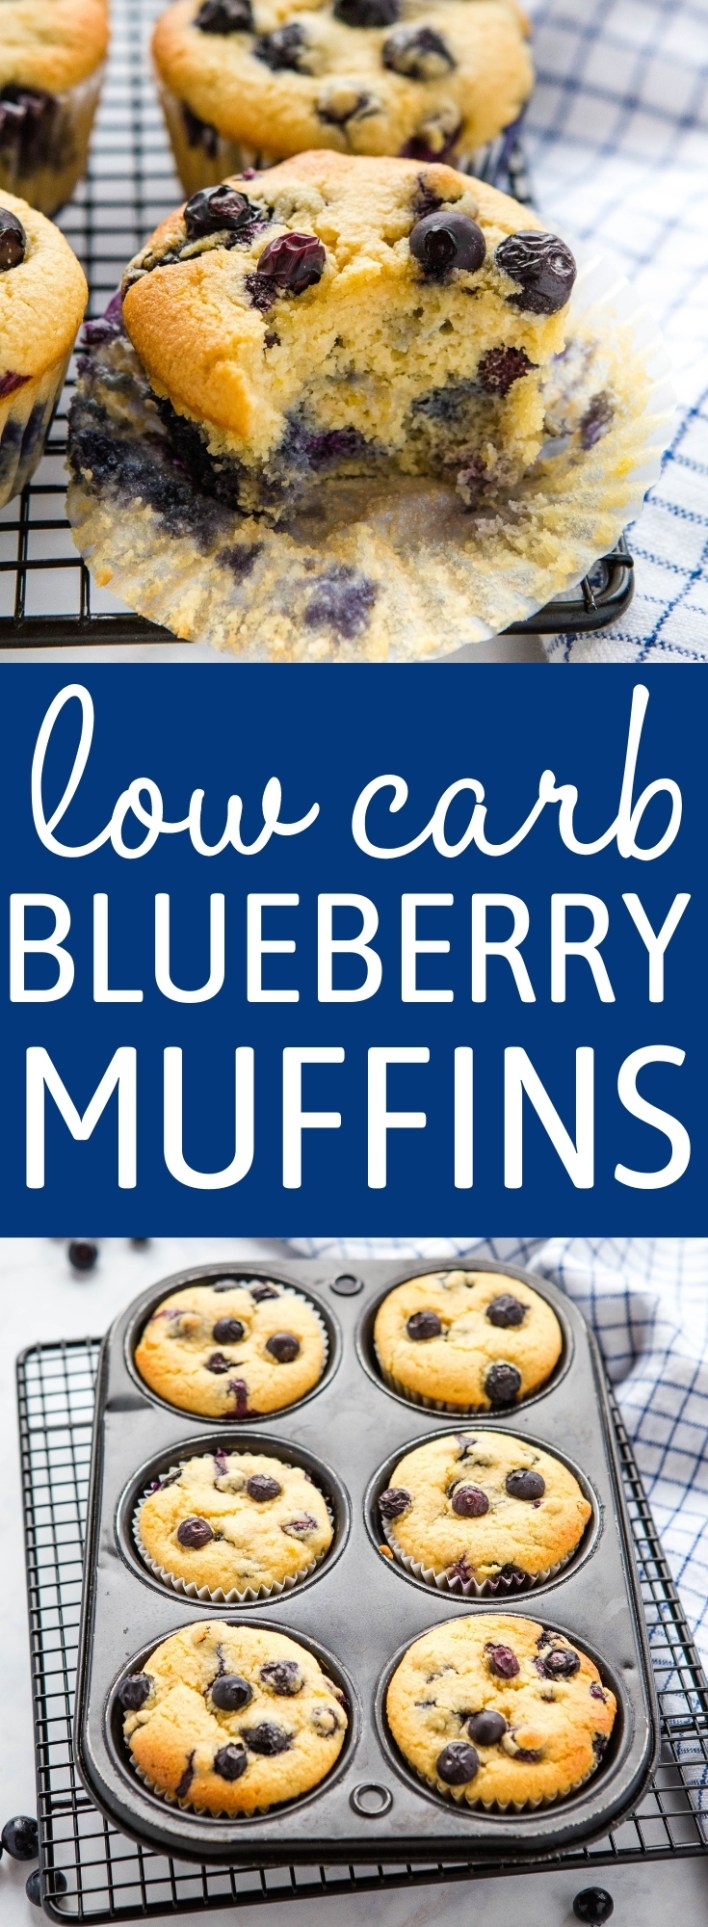 These Best Ever Low Carb Blueberry Muffins are fluffy and sweet, with a classic muffin texture - gluten-free, sugar-free, and only 3 grams of net carbs per muffin! Recipe from thebusybaker.ca! #blueberrymuffins #lowcarb #keto #baking #ketobaking #blueberries #lowcarbmuffins #healthy #almondflour #glutenfree #sugarfree via @busybakerblog